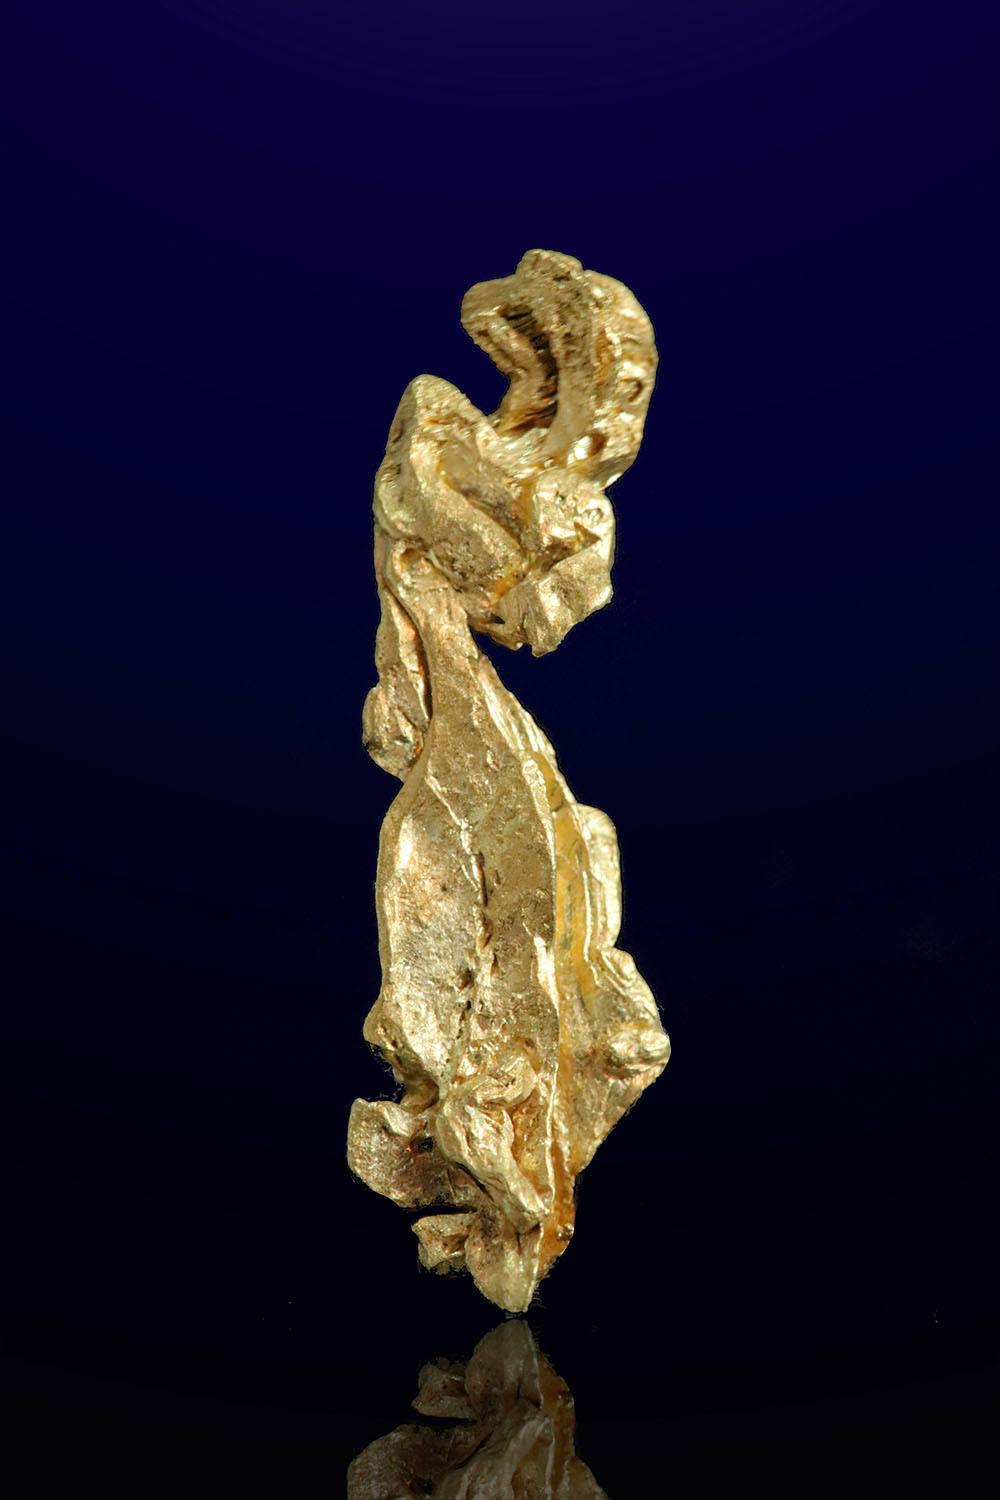 Elongated and Intricate- Natural Gold Crystal from Mt. Kare, PNG